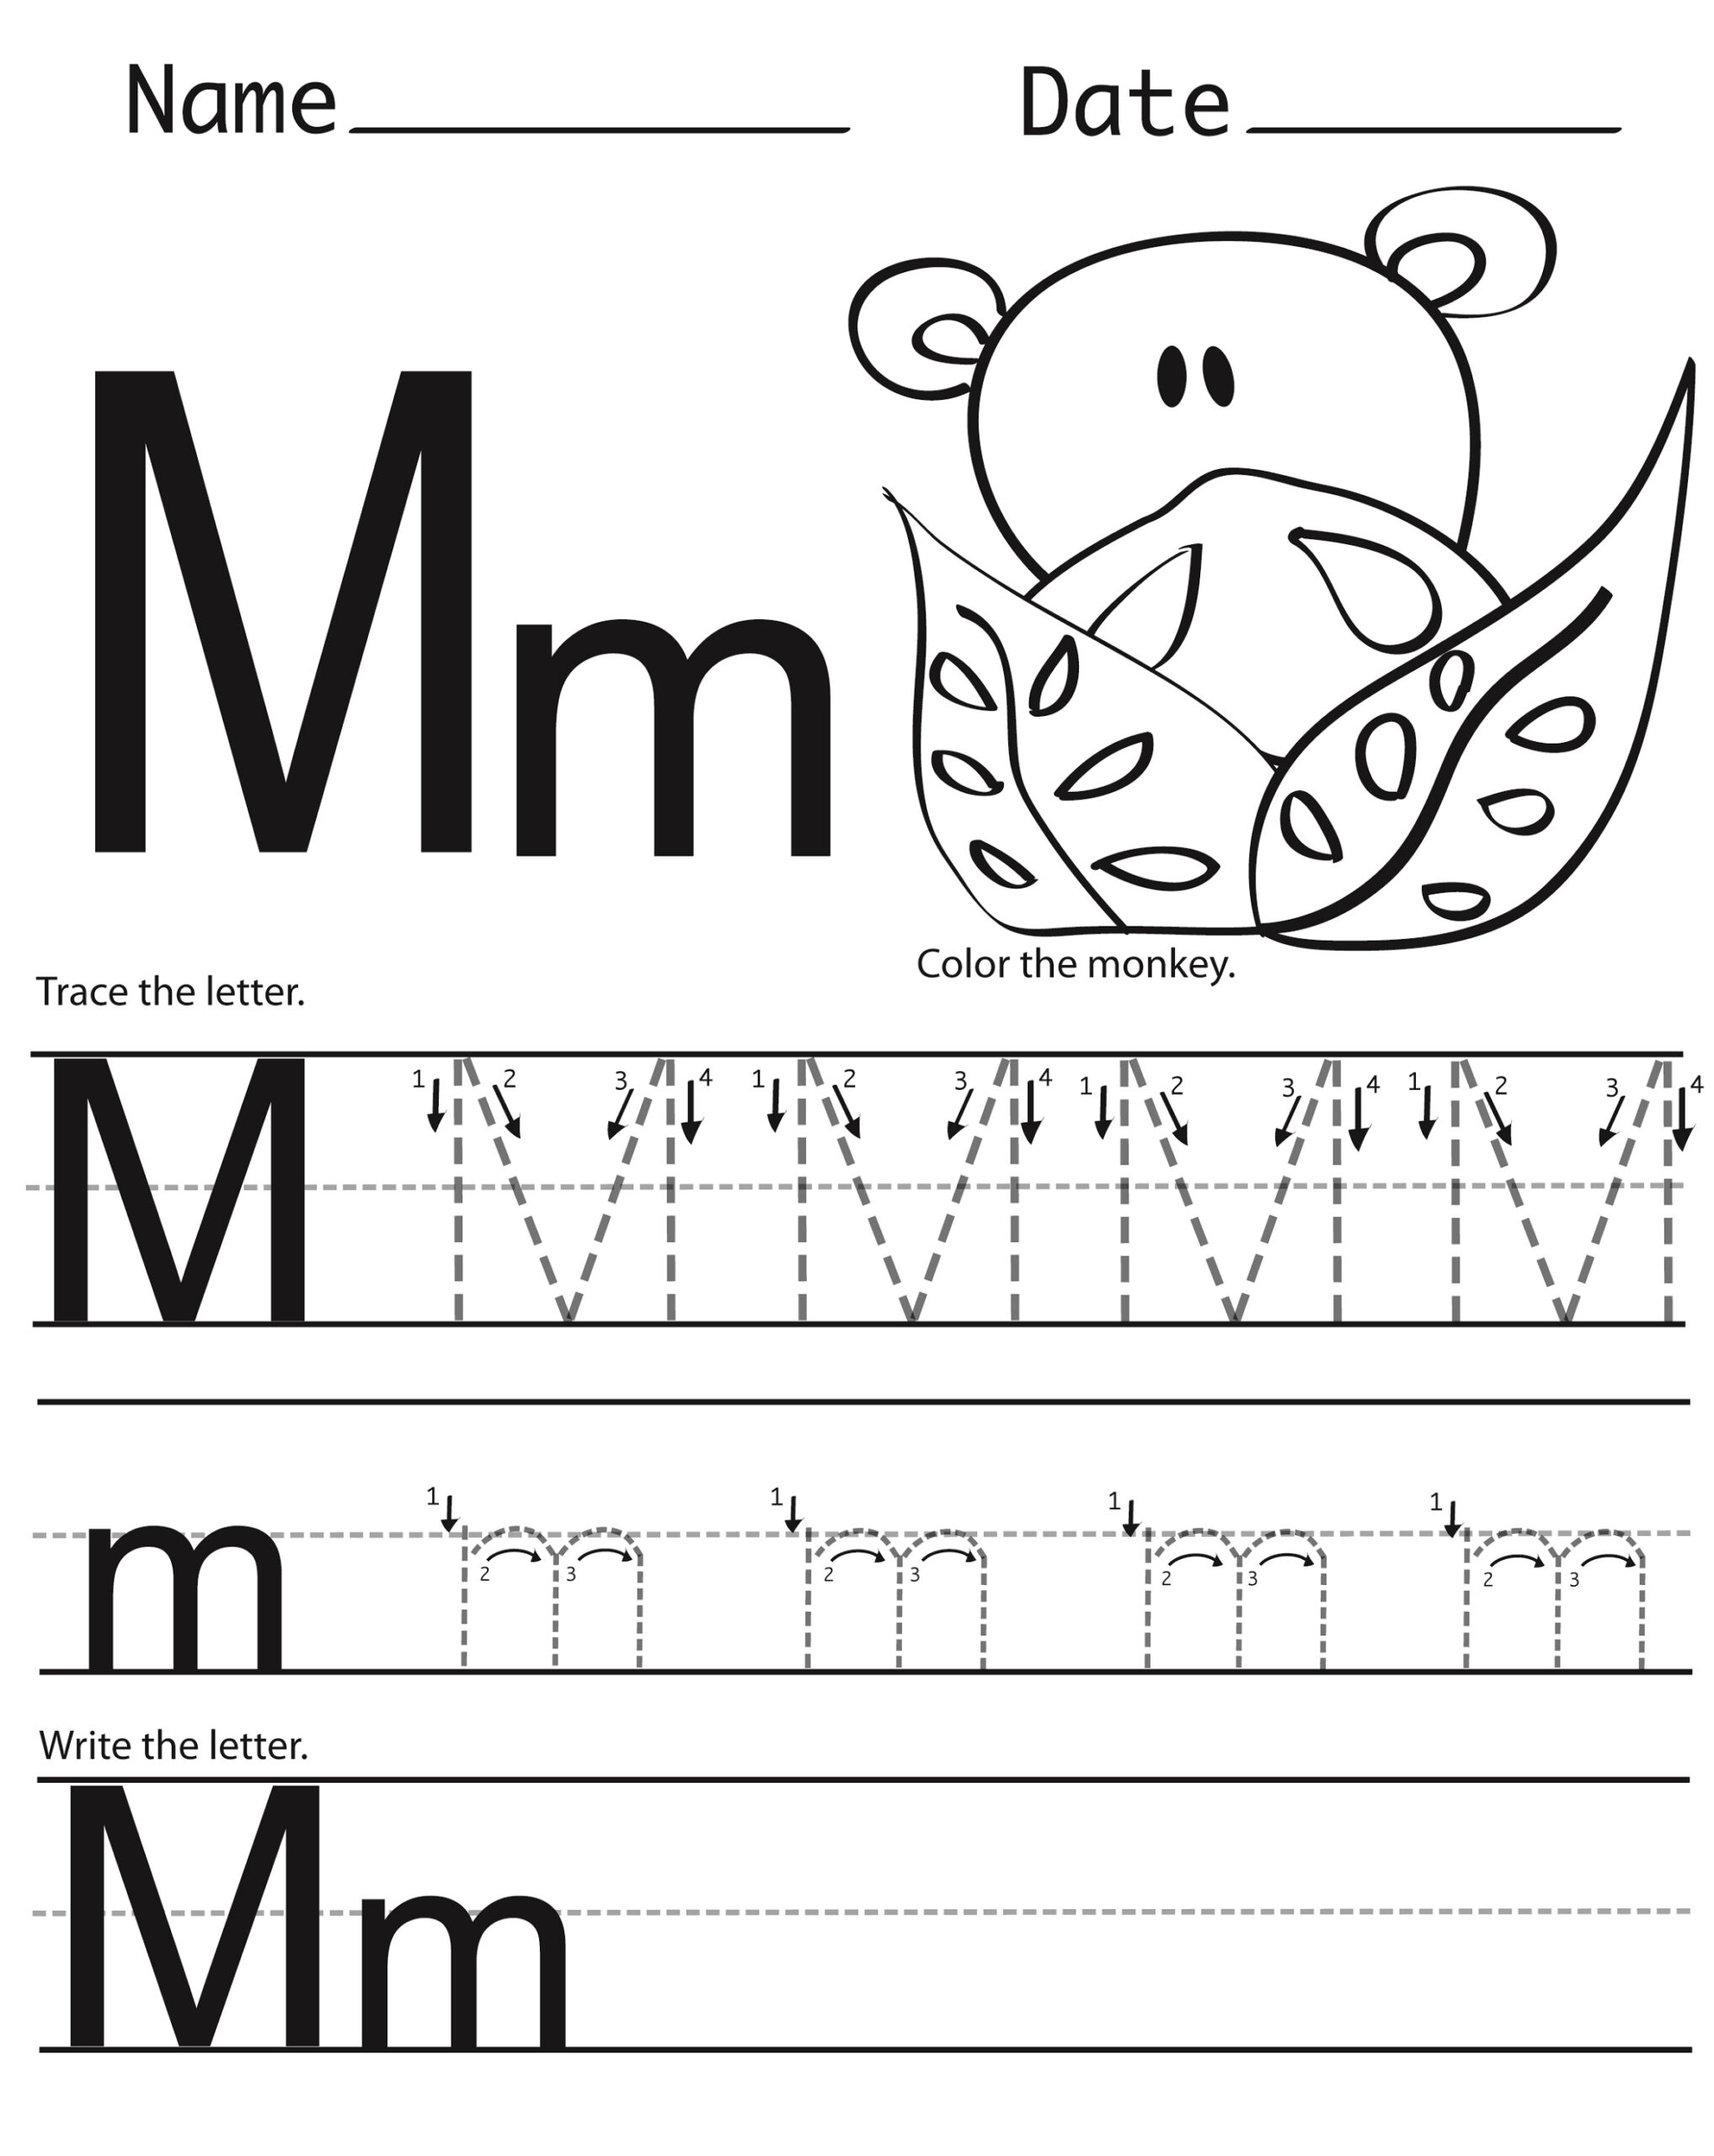 Letter M Worksheets | Activity Shelter inside Letter M Worksheets Printable